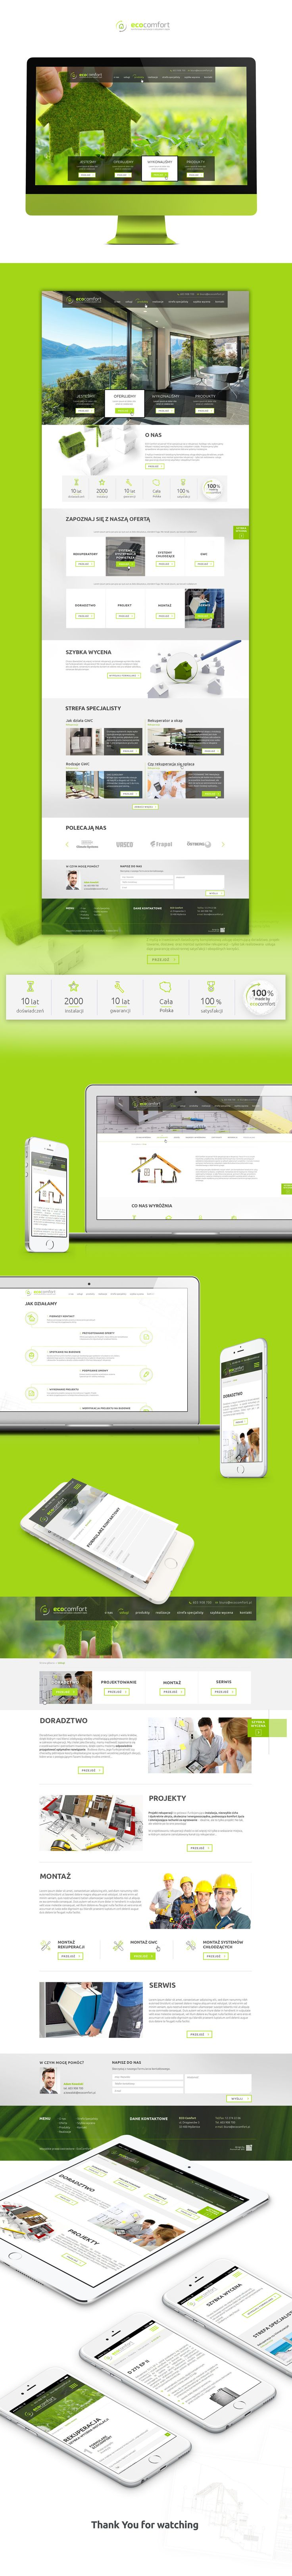 Behance :: Editing EcoComfort - website